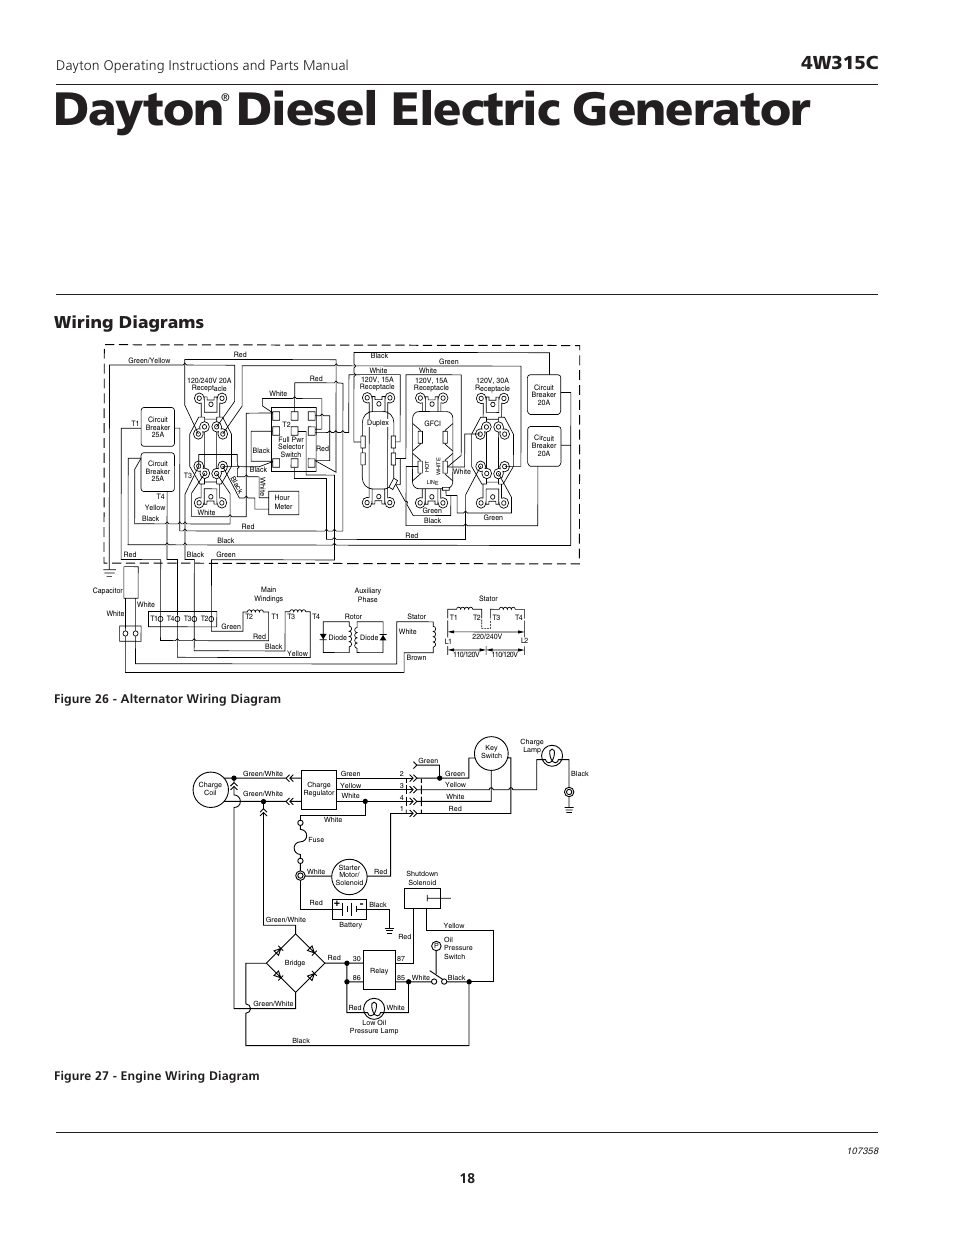 Groovy Wiring Diagram Figure Wiring Diagram Data Wiring Cloud Hisonuggs Outletorg